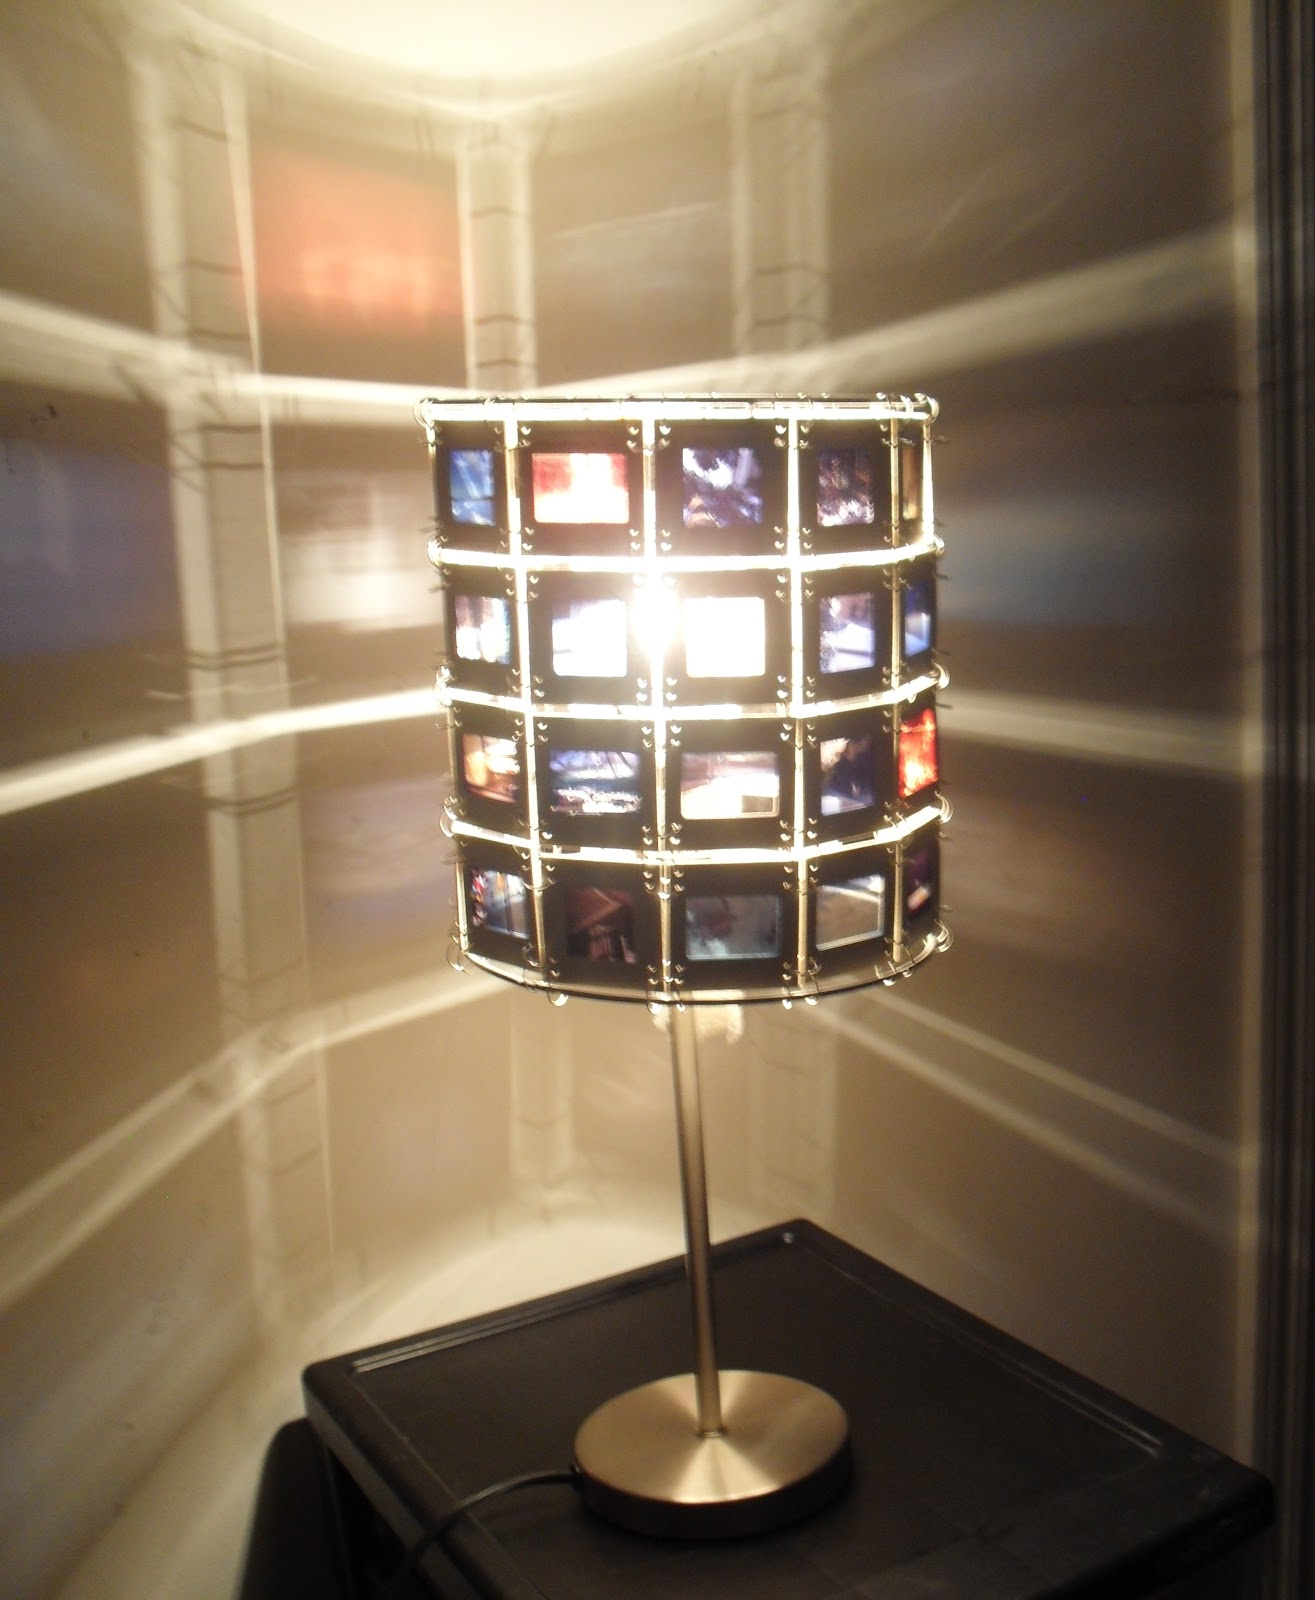 Cosmic designs 35mm slides lamp shade cosmic designs mozeypictures Choice Image